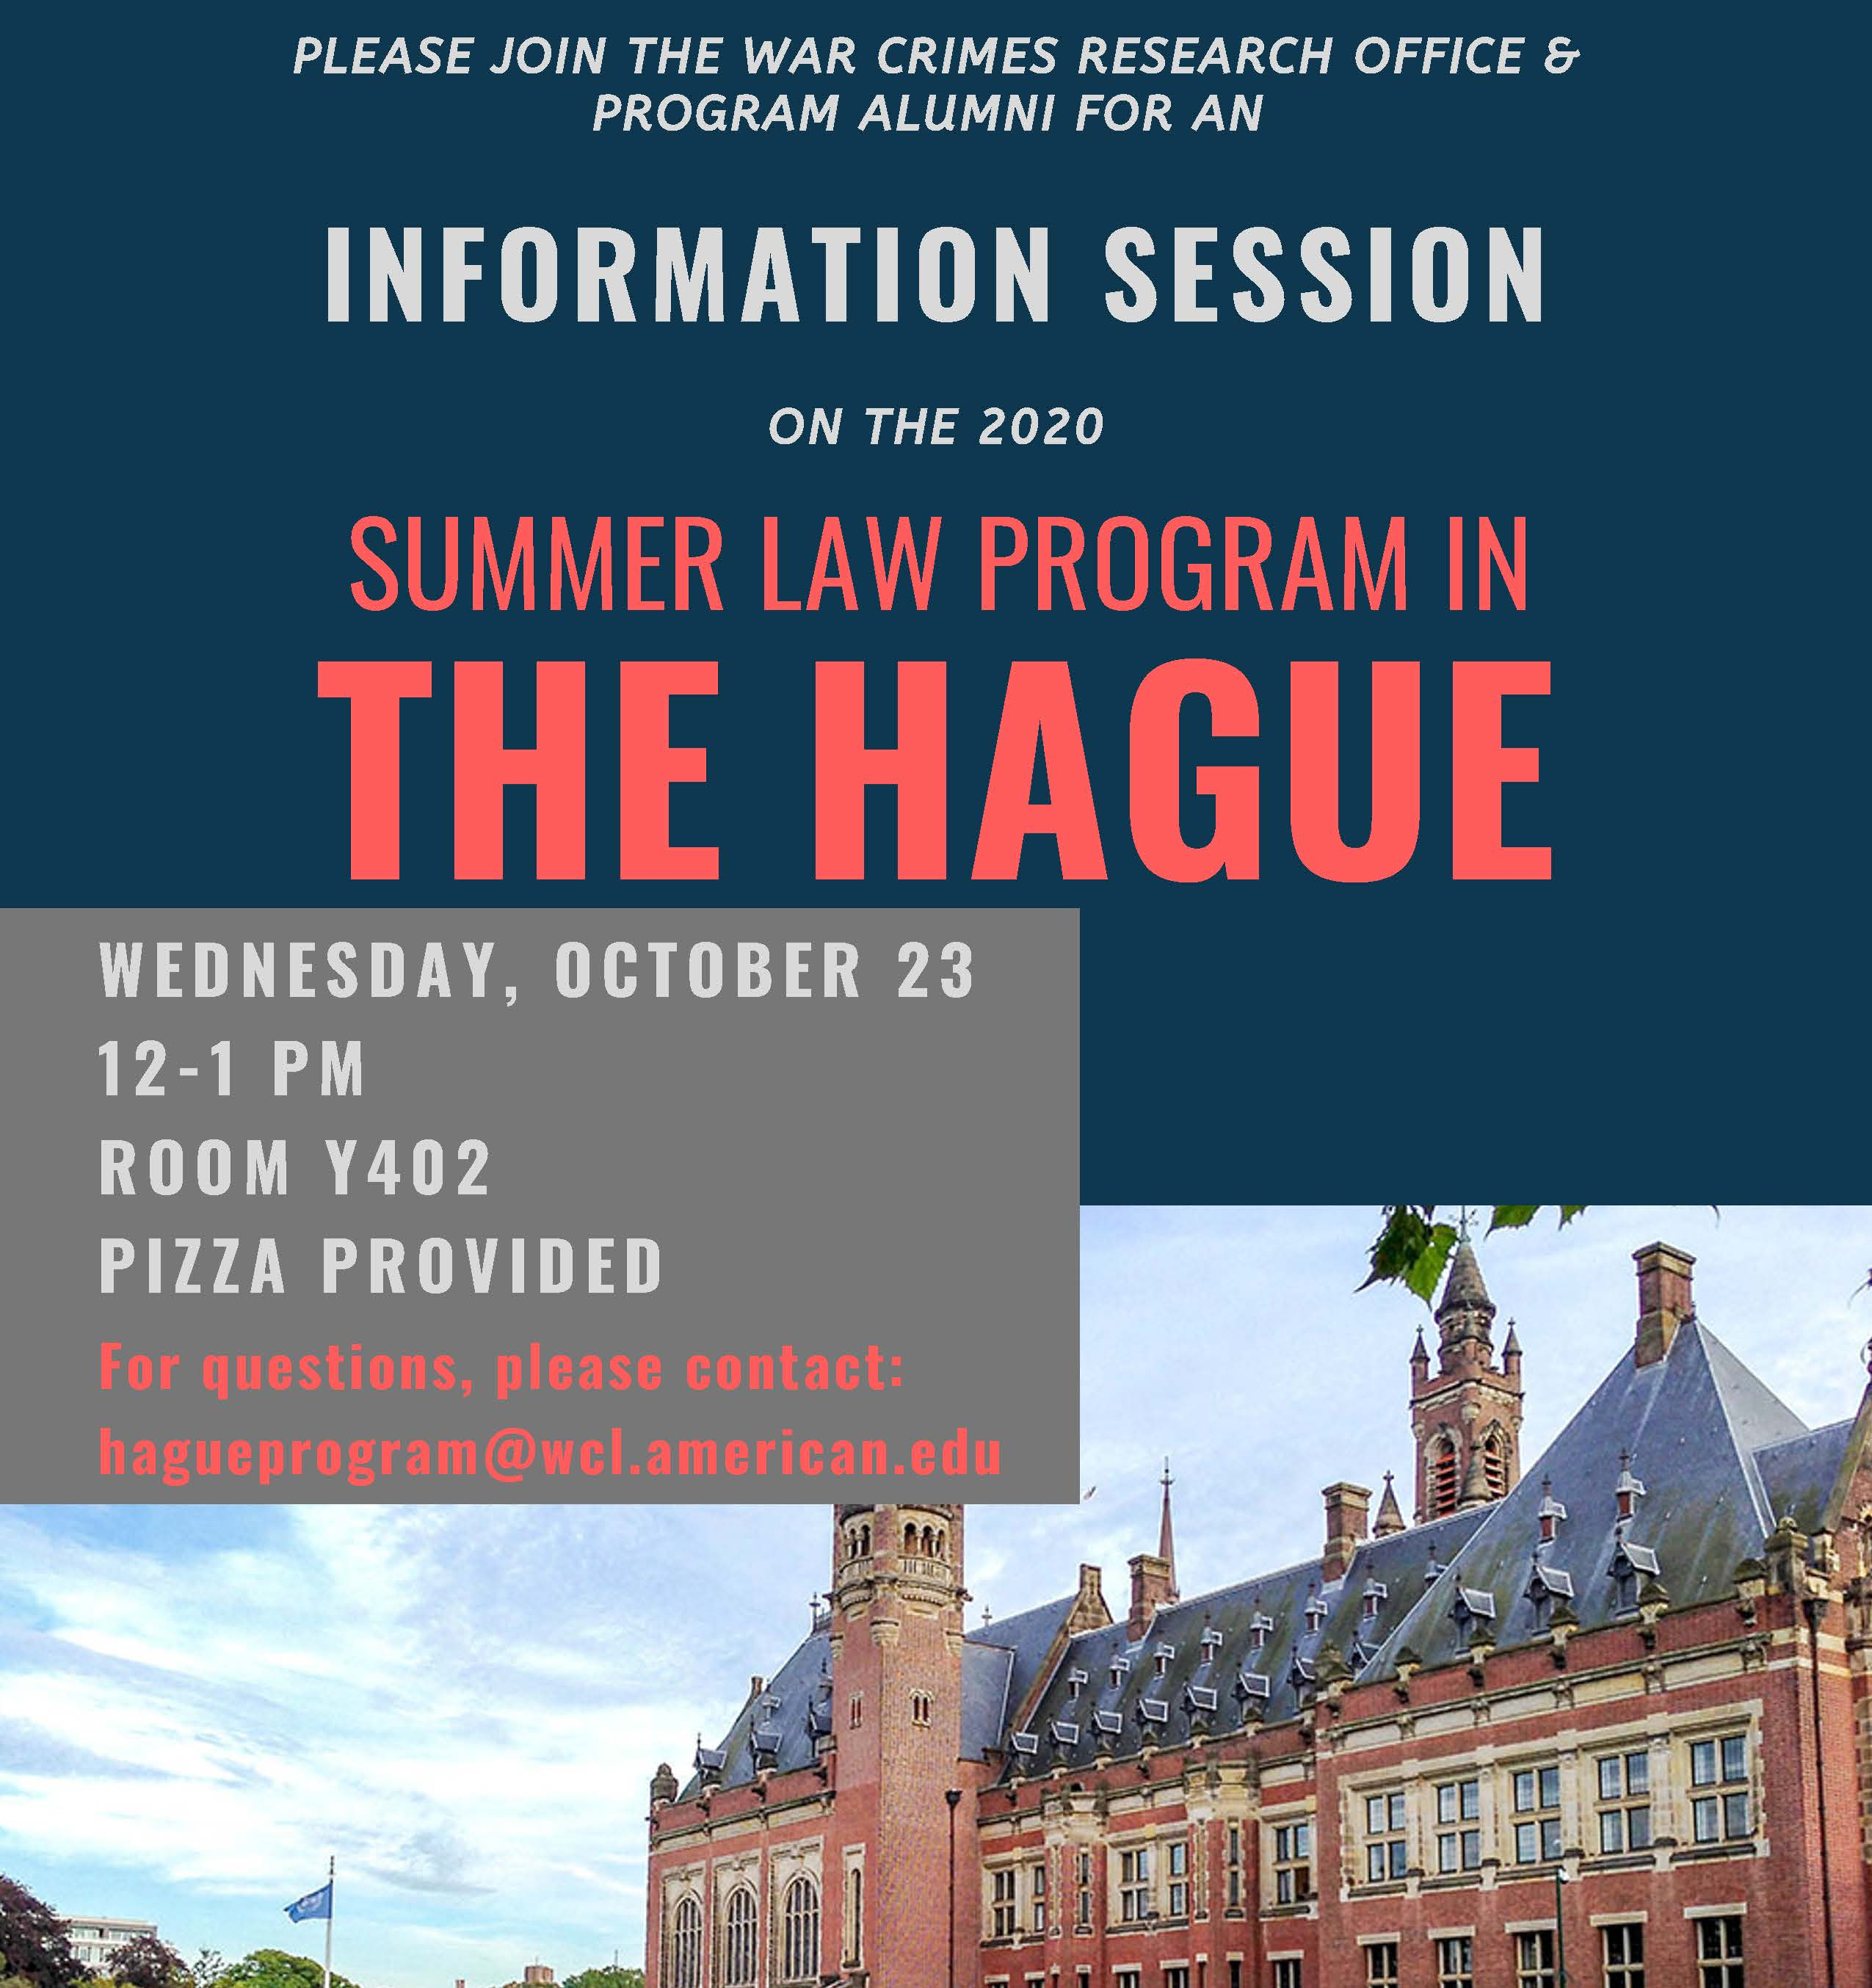 2020 Summer Law Program in The Hague Information Session